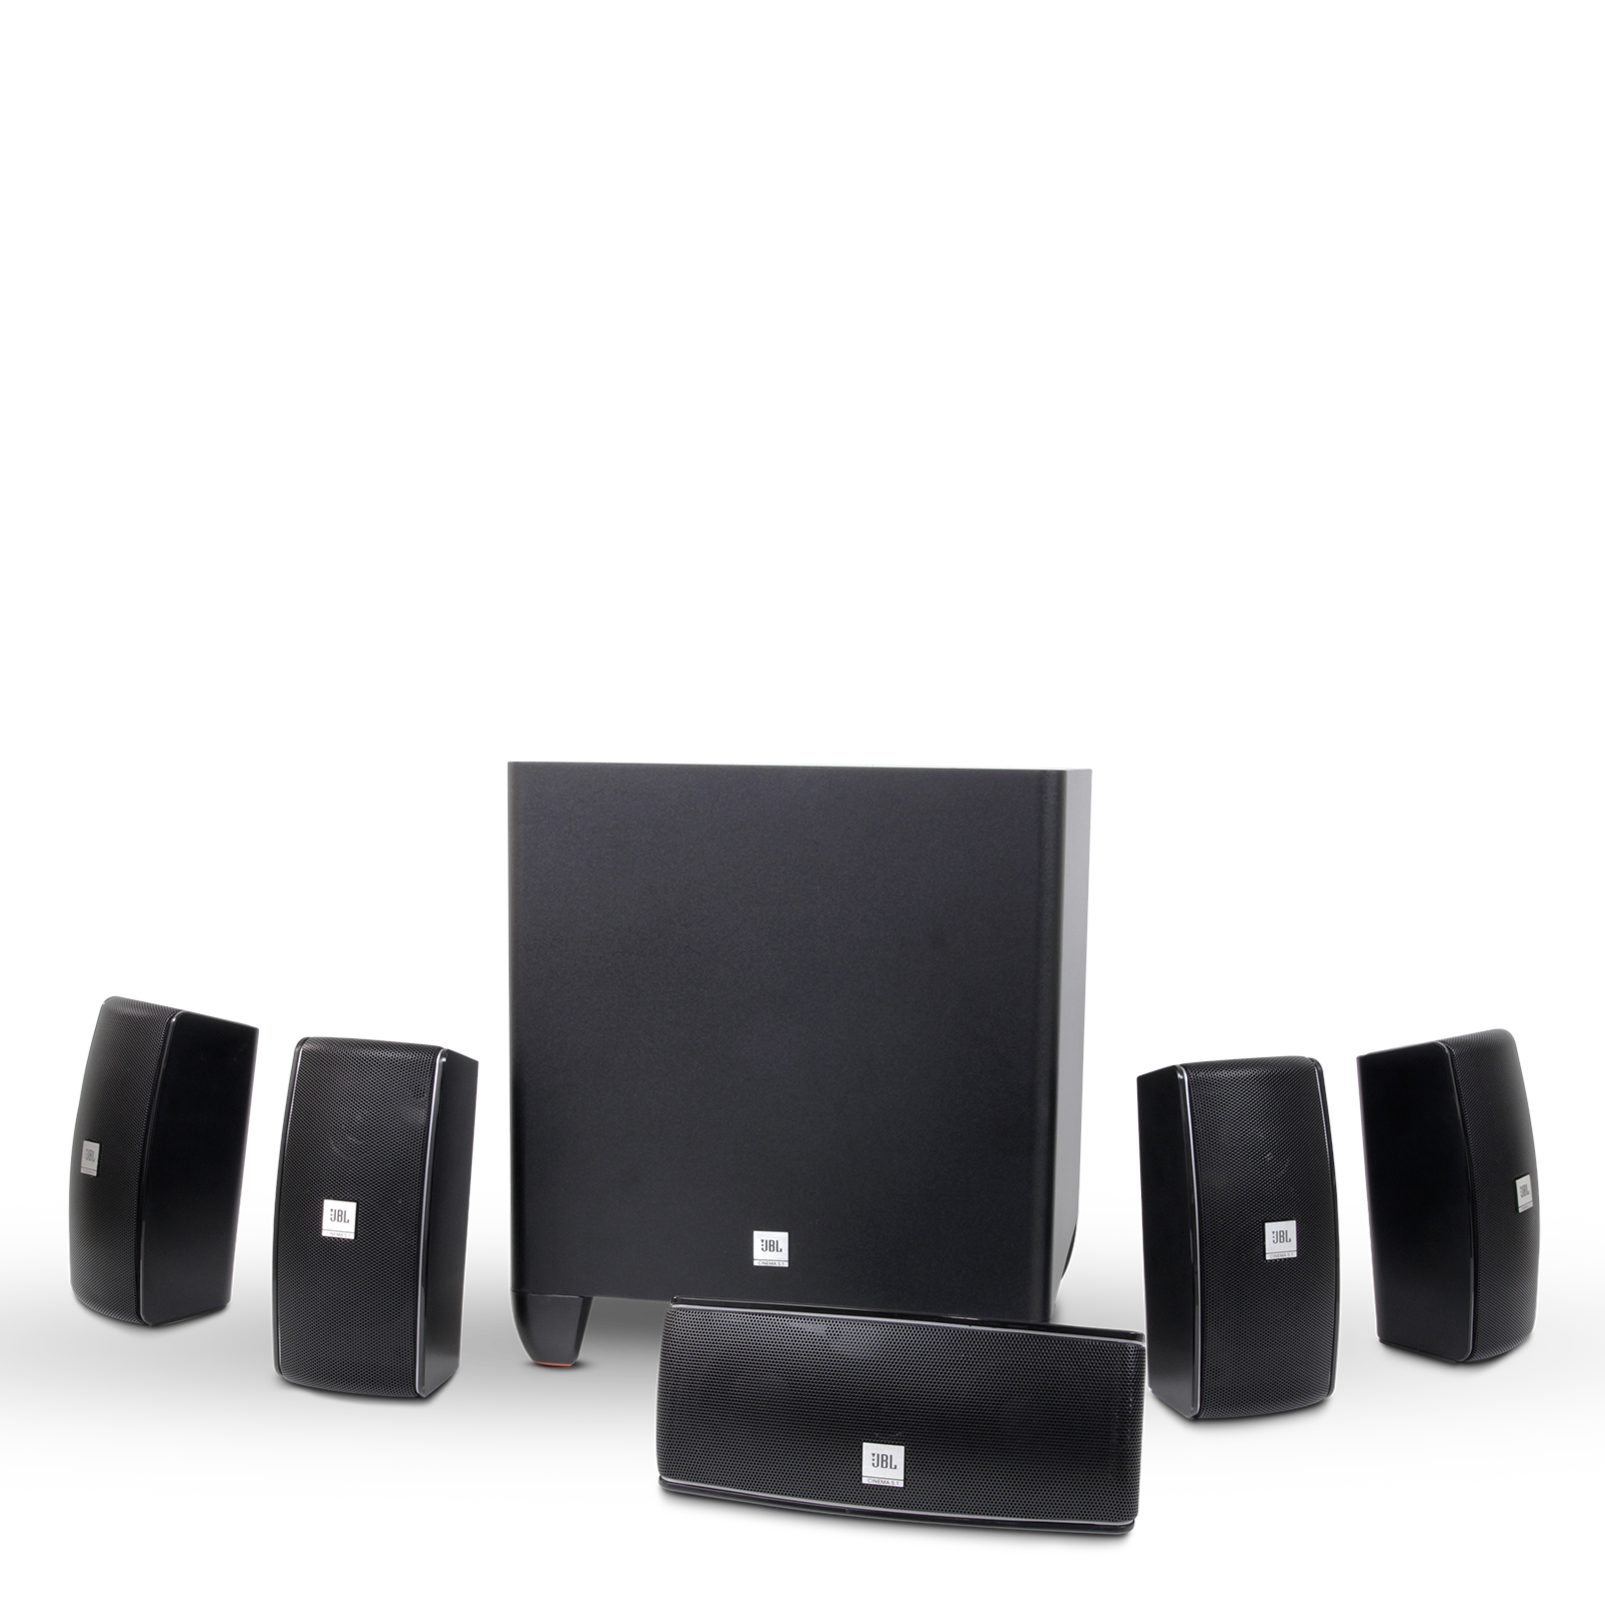 Jbl Cinema 610 Advanced 51 Speaker System Home Wiring Guide